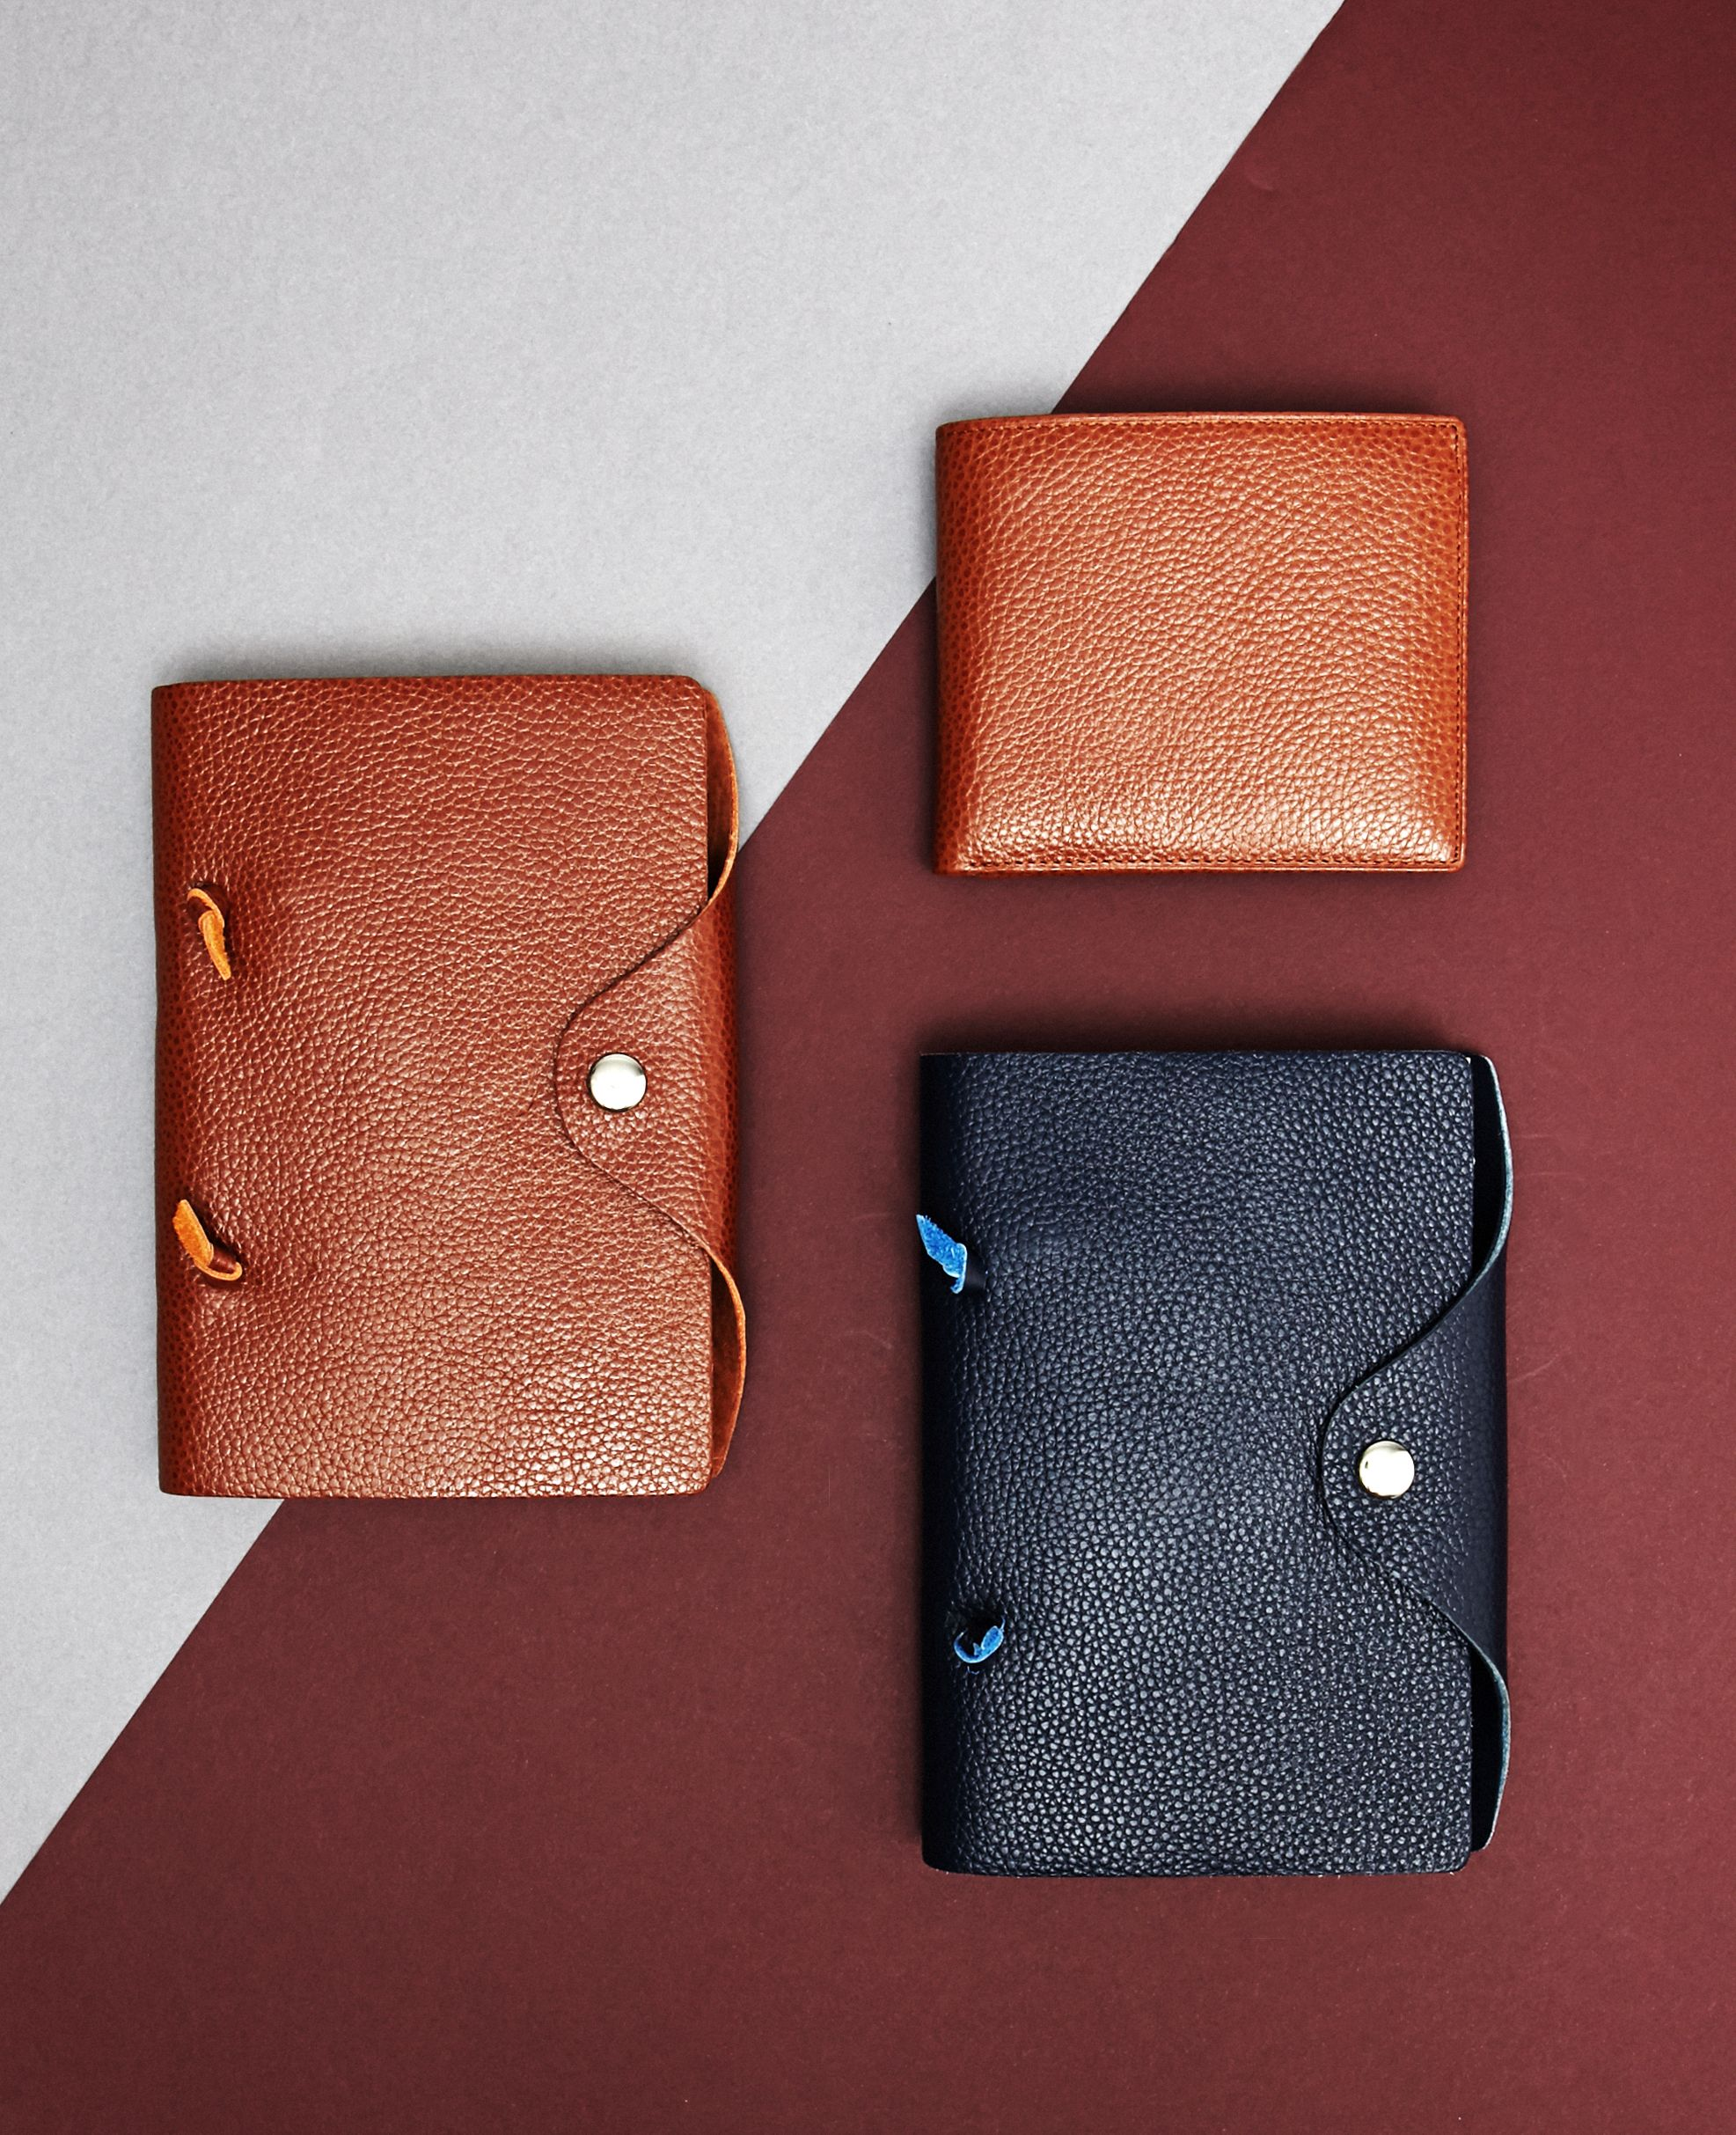 Austin Reed Leather Goods Mens Leather Accessories Luxury Gifts For Men Luxury Gifts